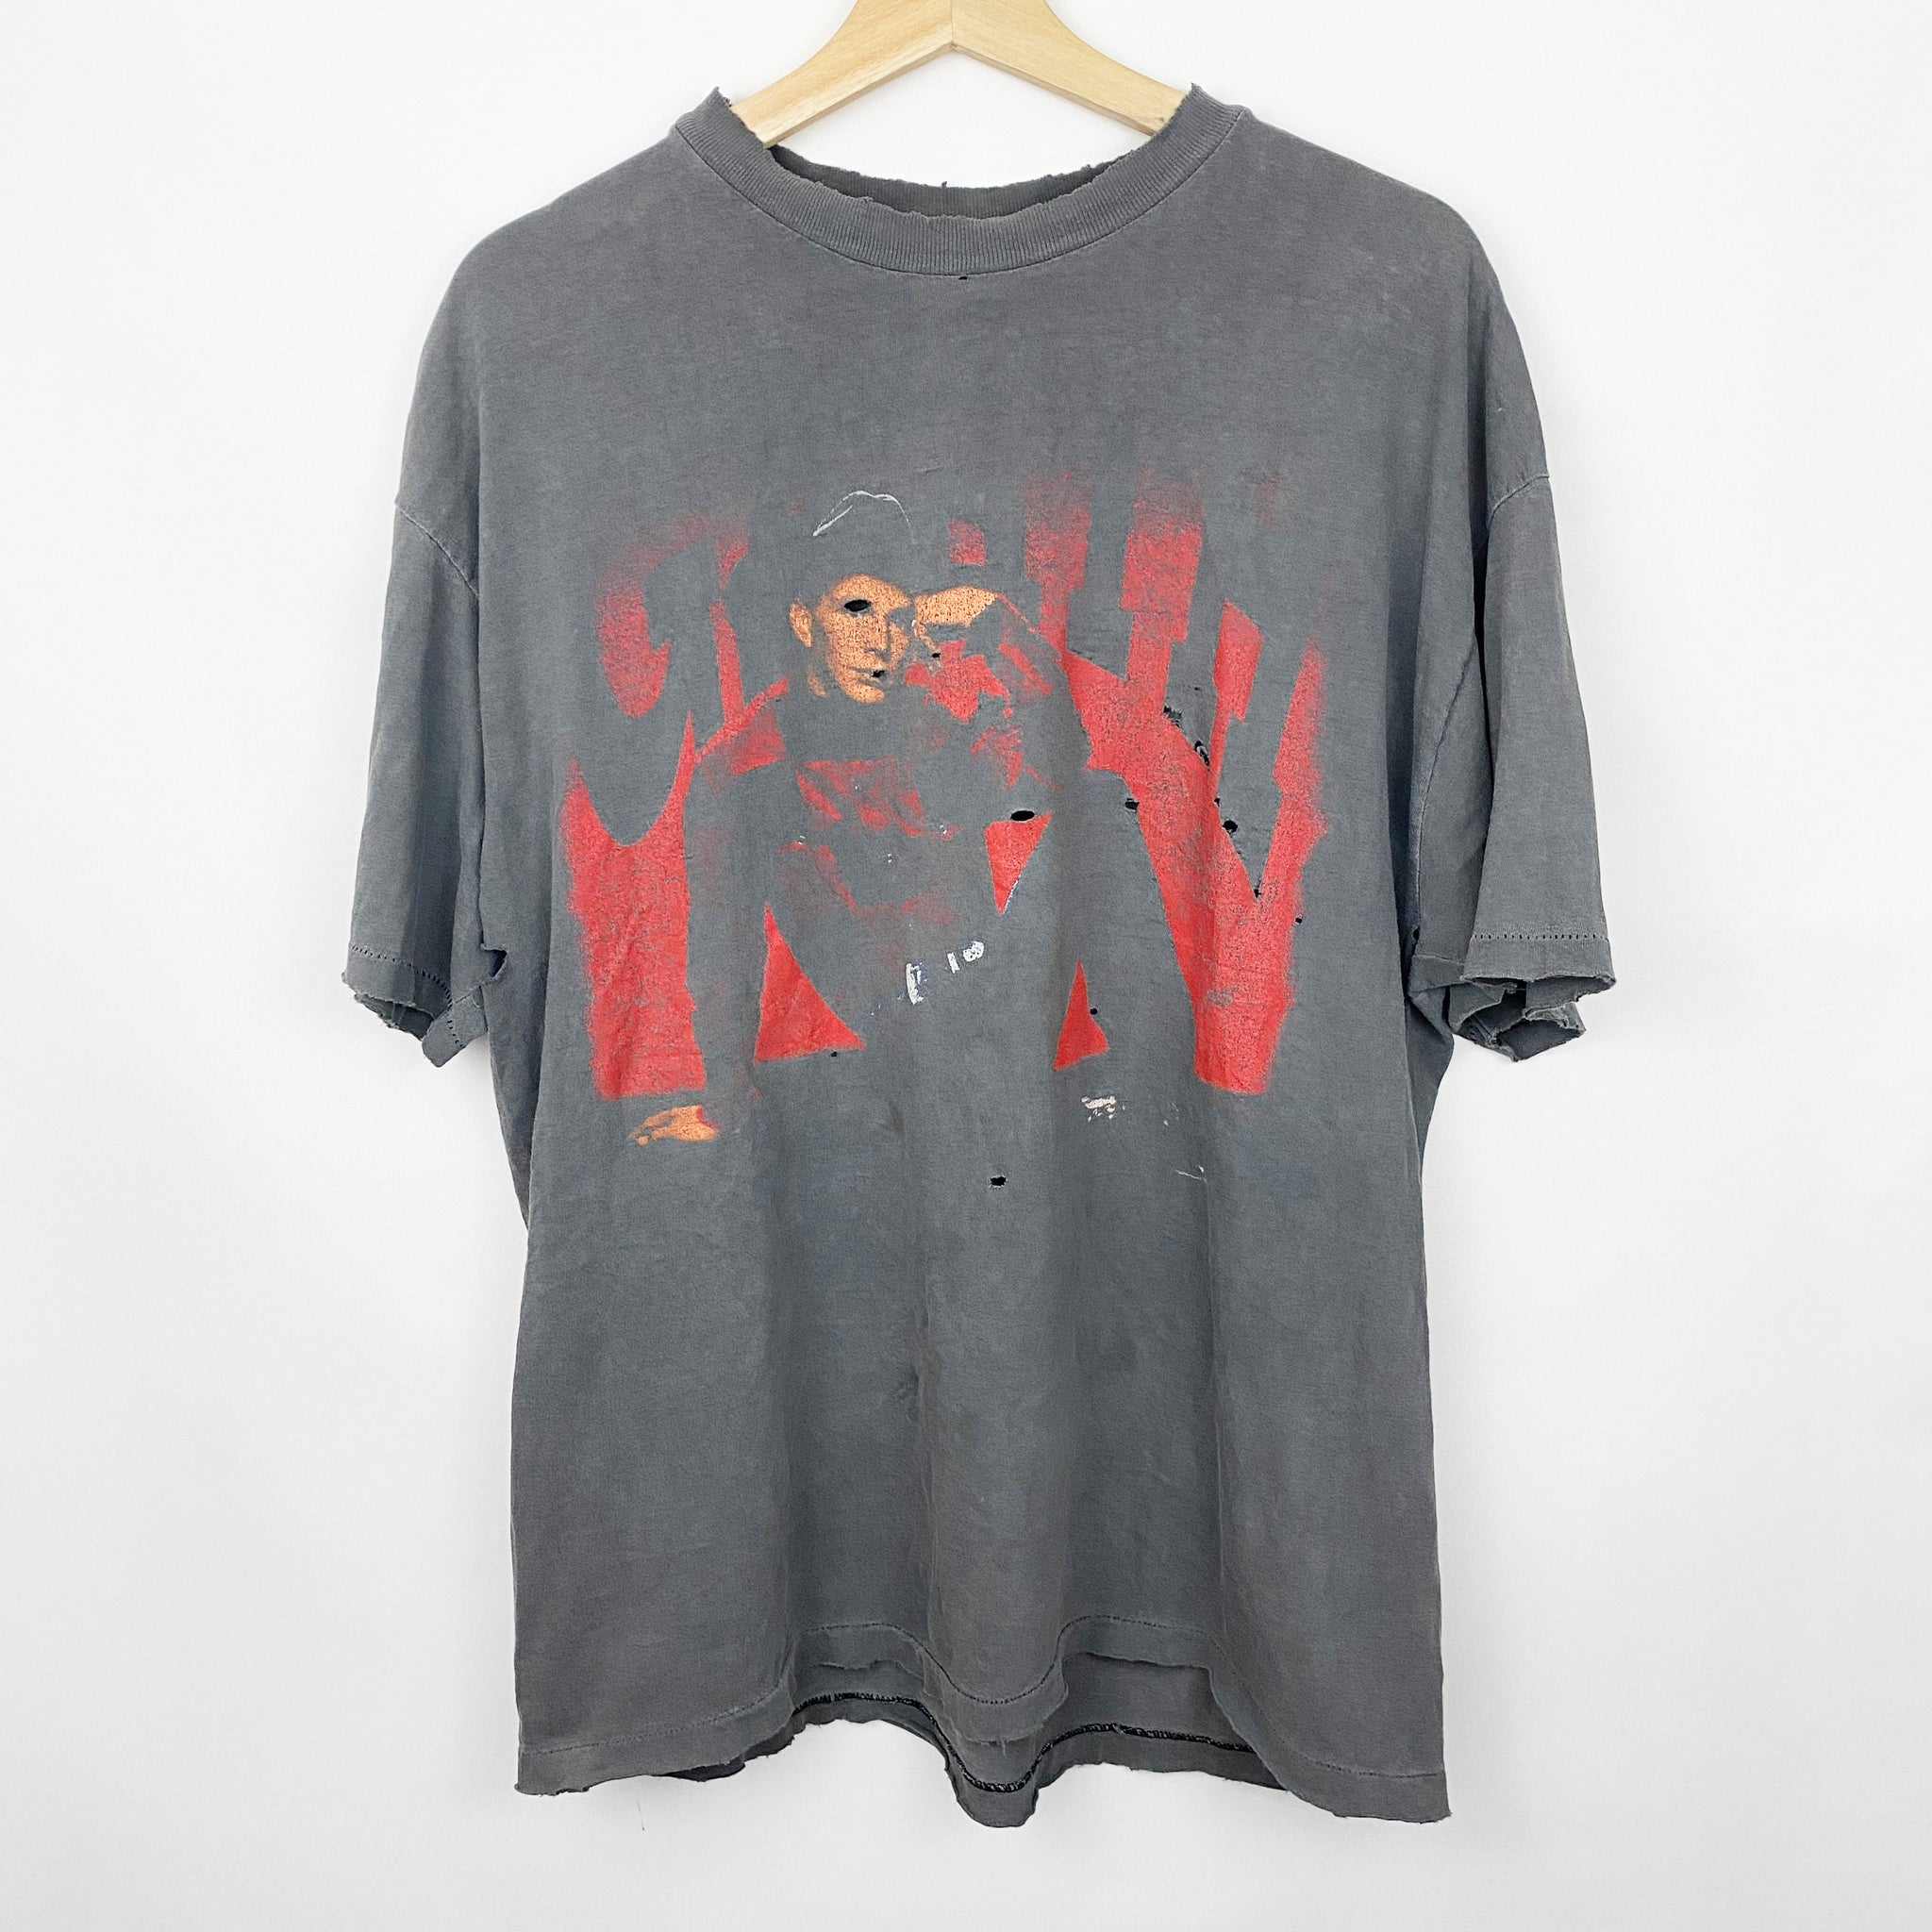 Vintage 90s 1993 Garth Brooks 'In Pieces' Concert Tour Distressed Graphic Shirt